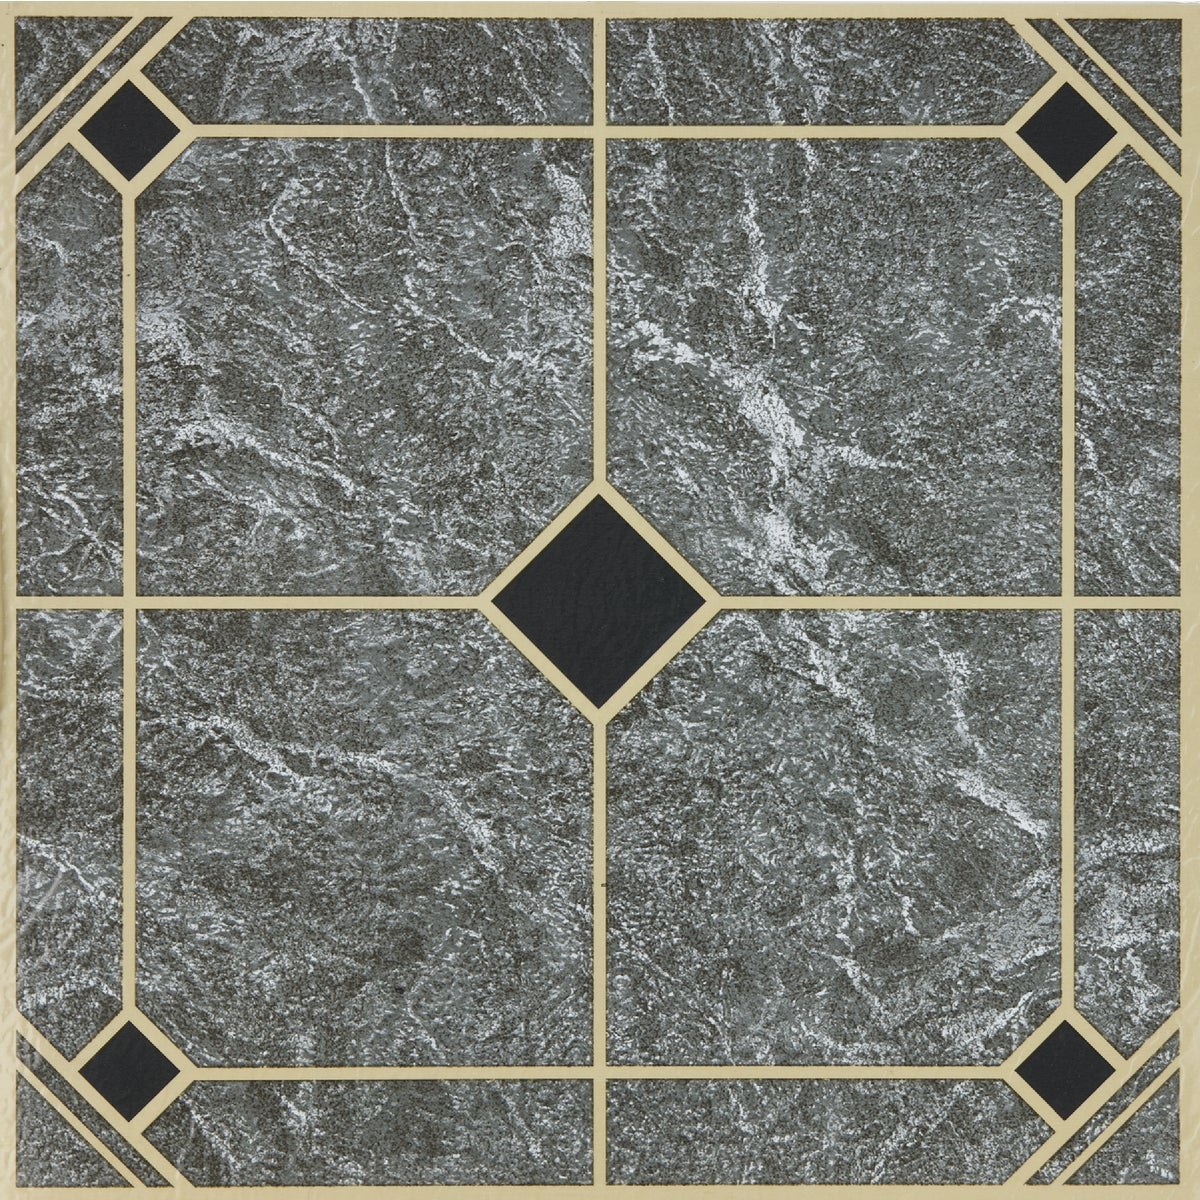 "12"" BLUE & GOLD TILE - KC90315 by Do it Best Global Sourcing"